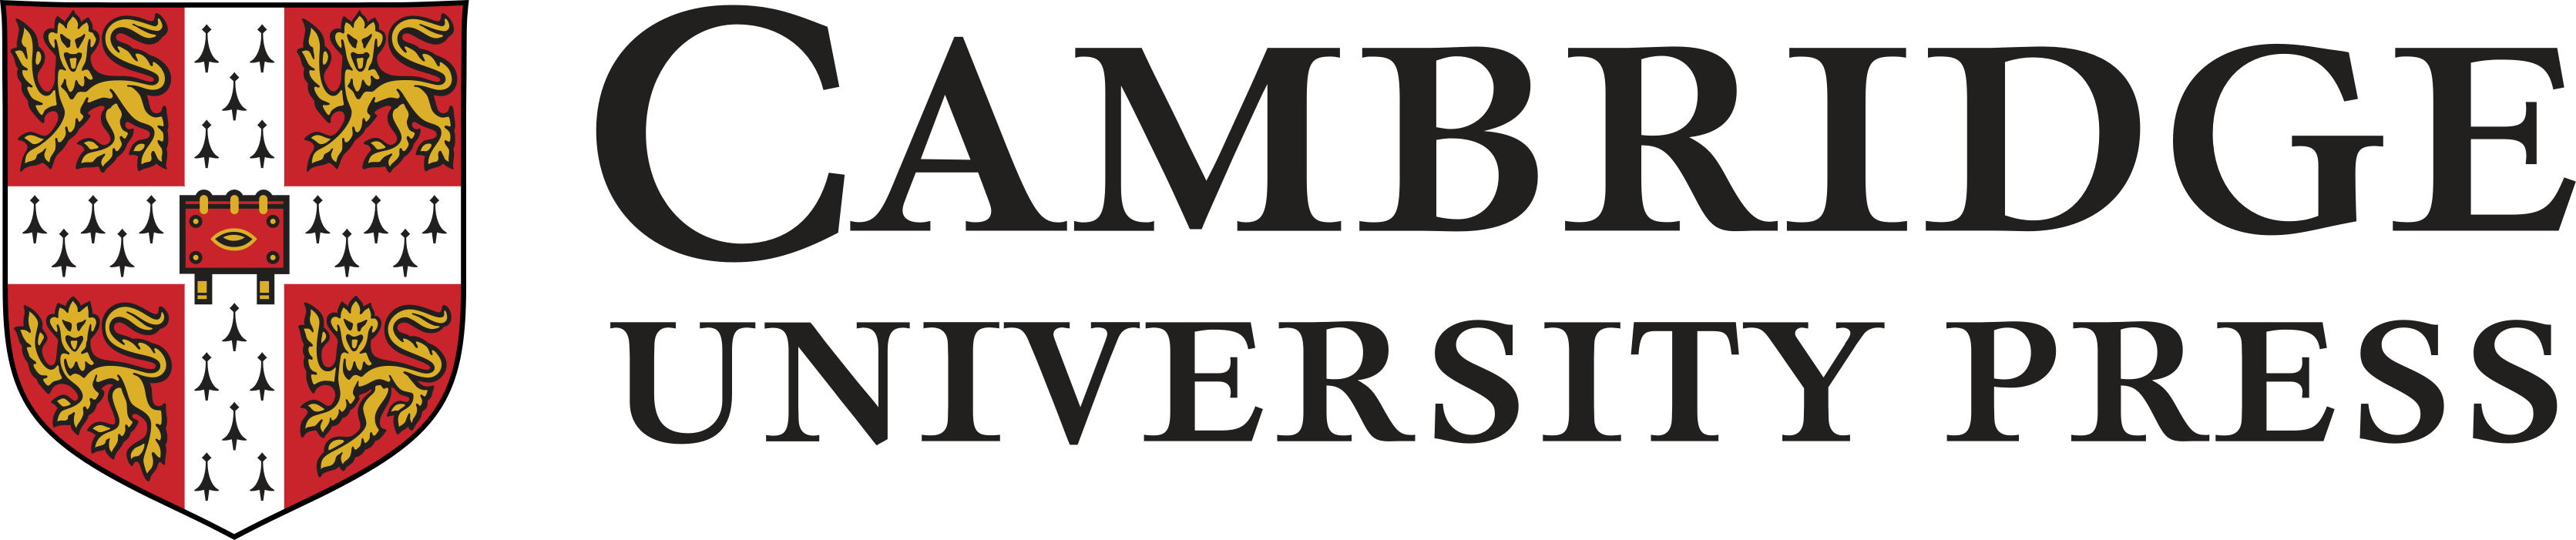 Cambridge Press logo